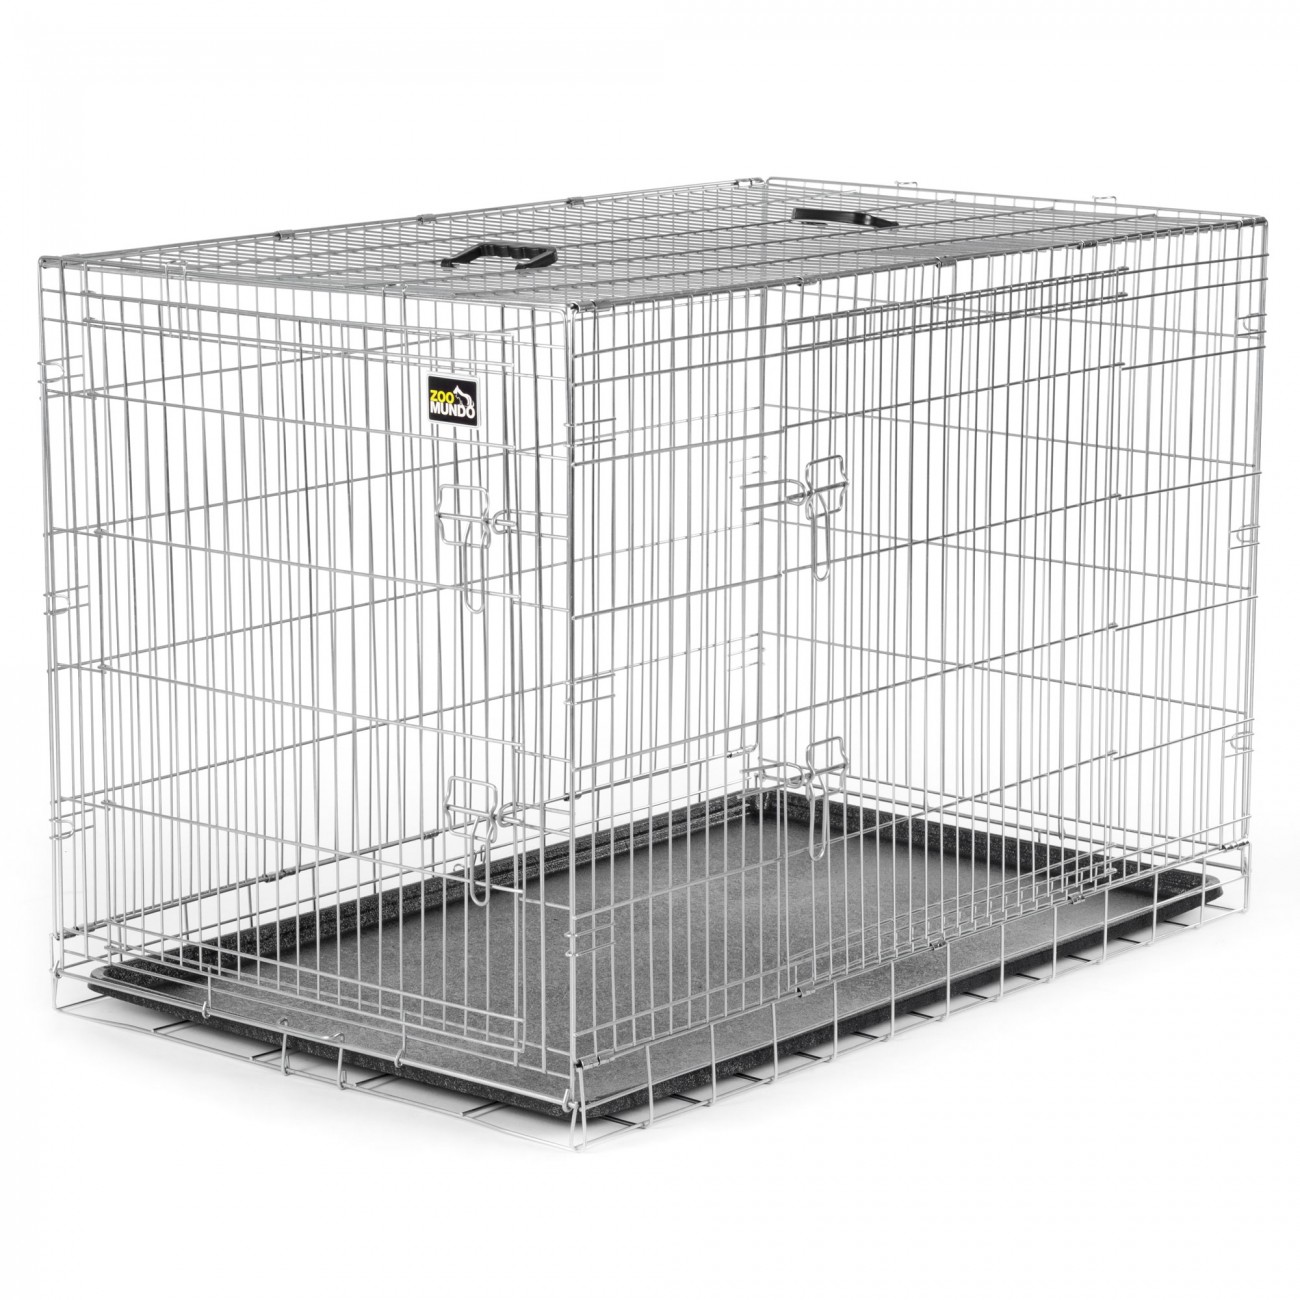 cage pour chiens zoomundo pliable chiots cage pour animaux caisse de transport ebay. Black Bedroom Furniture Sets. Home Design Ideas